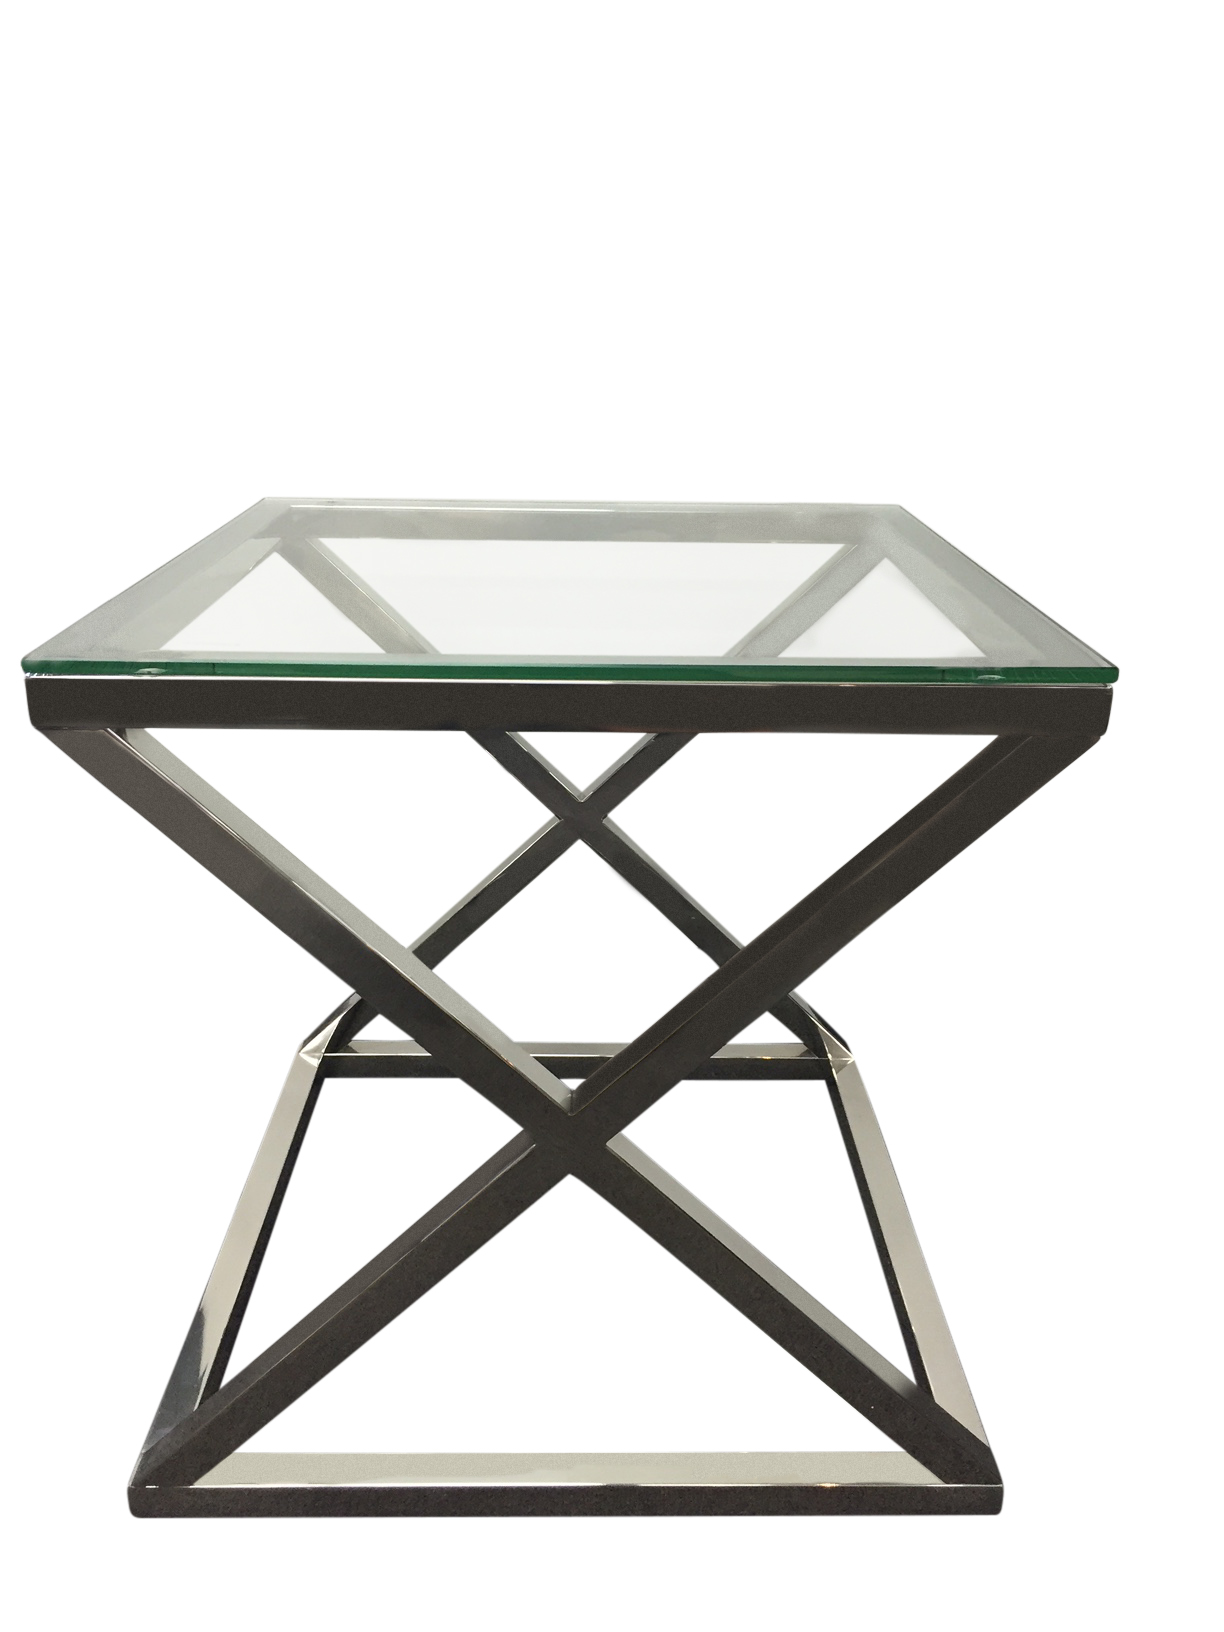 dining nicholas tables arianna top product clear stainless glass a john zenith end marble table with steel